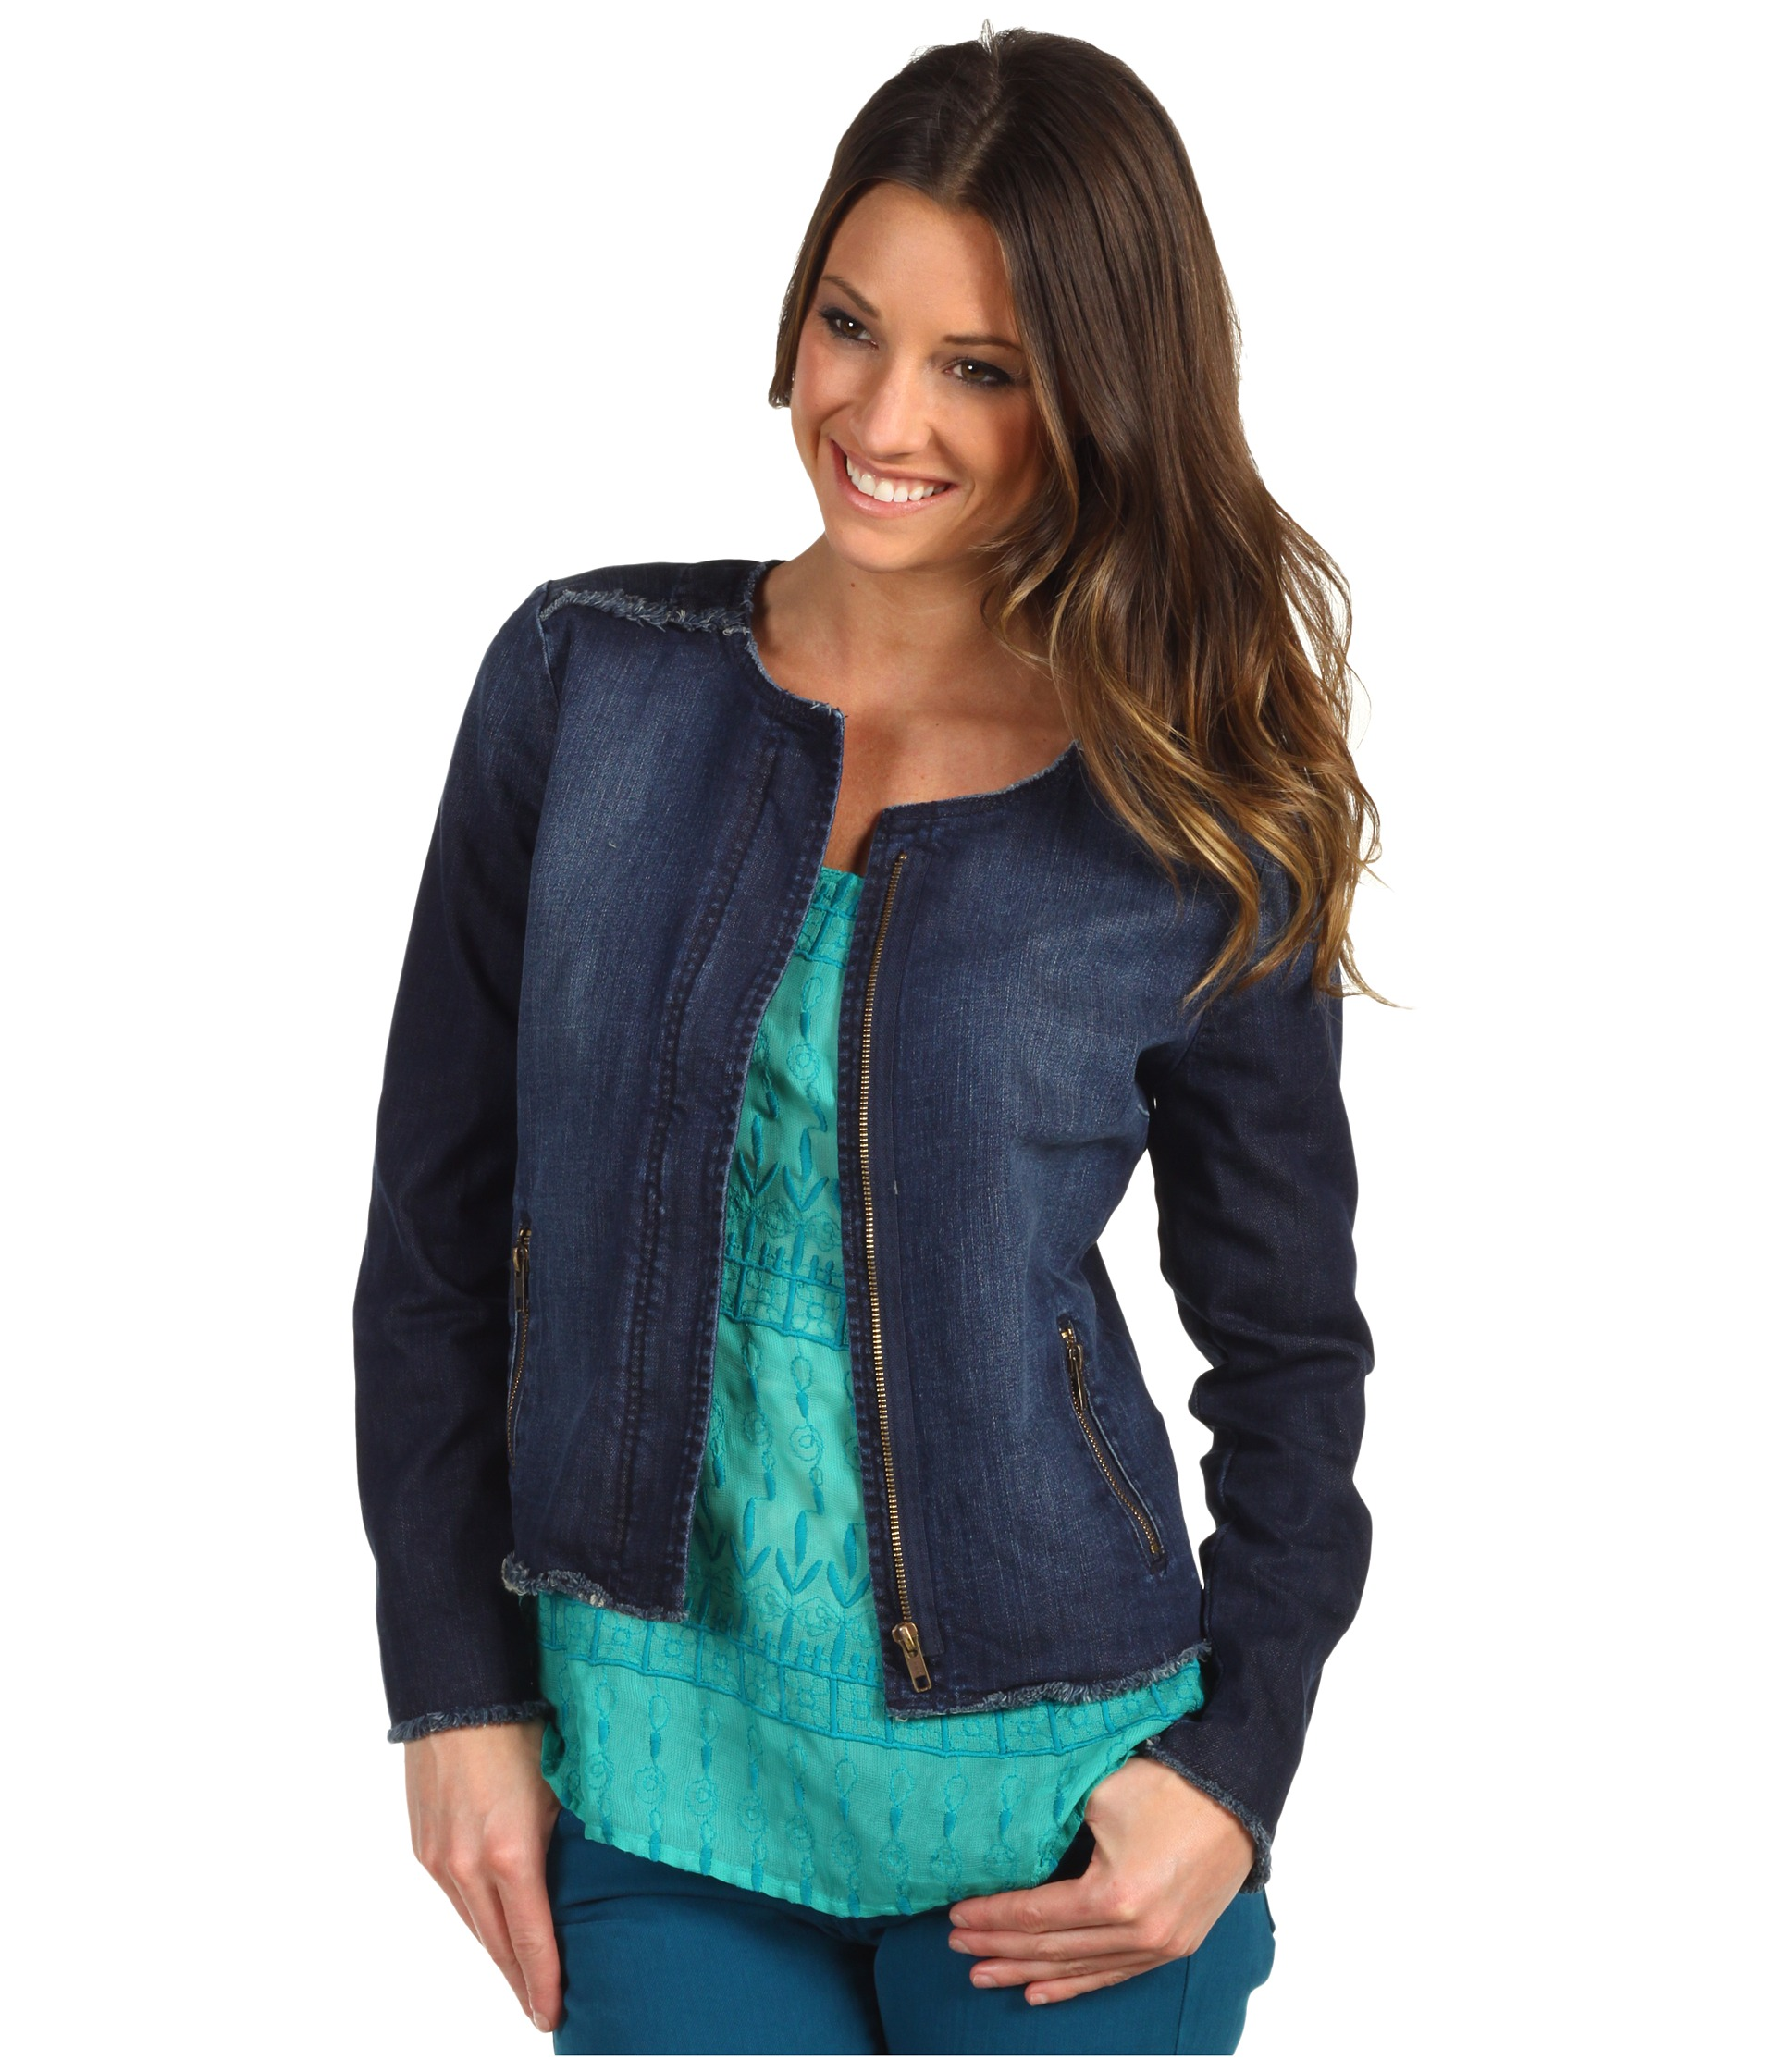 lucky brand adamson cropped denim jacket $ 129 00 new kut from the